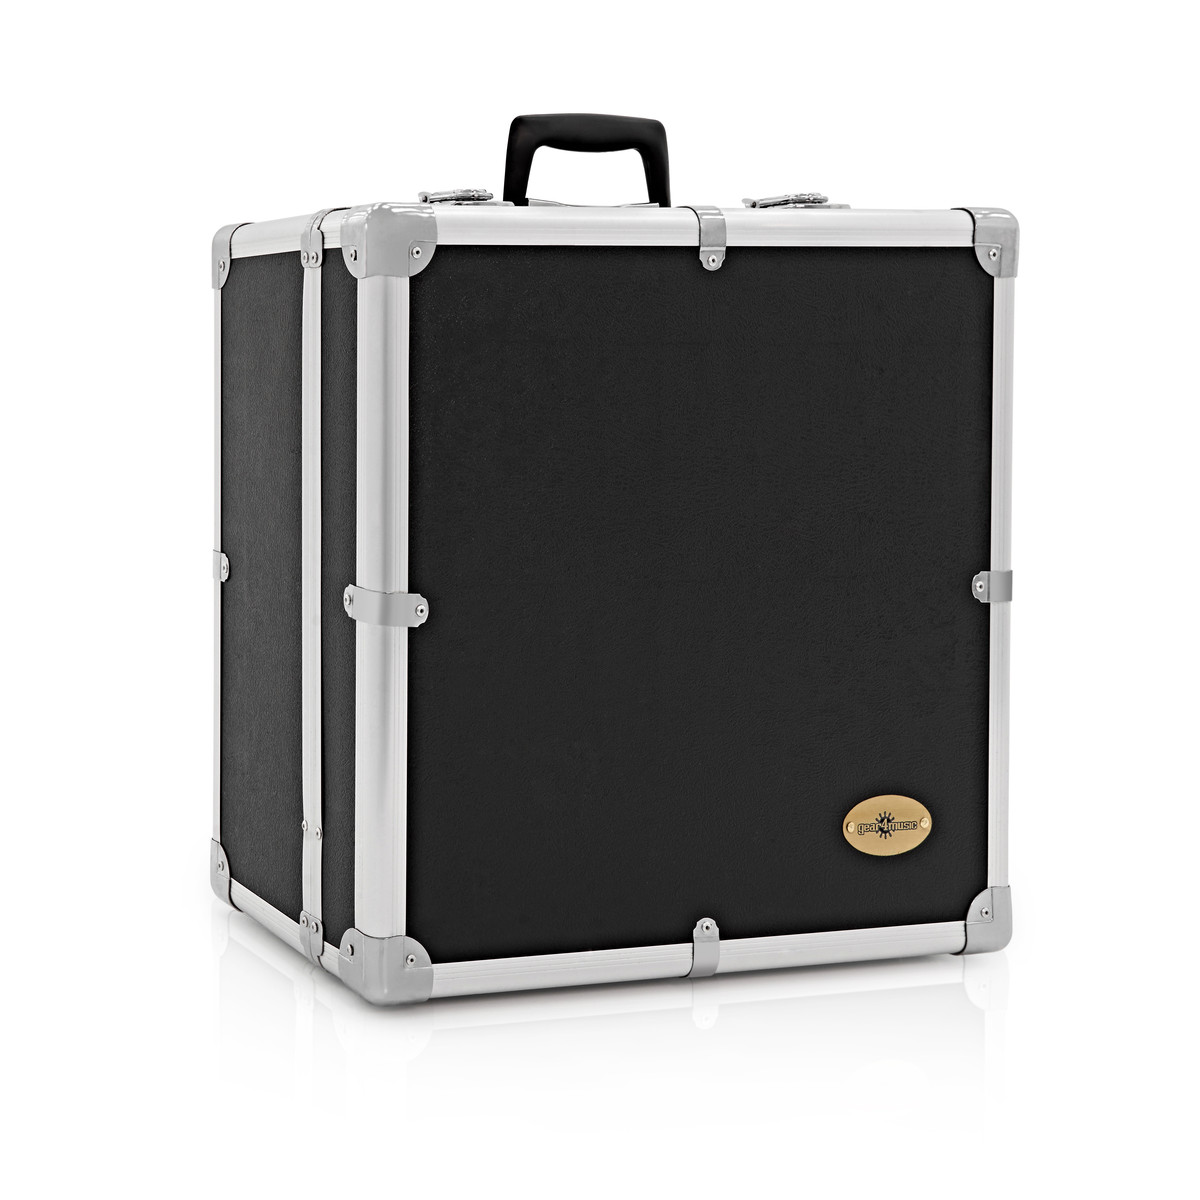 27 Key/48 Bass Accordion ABS Case by Gear4music